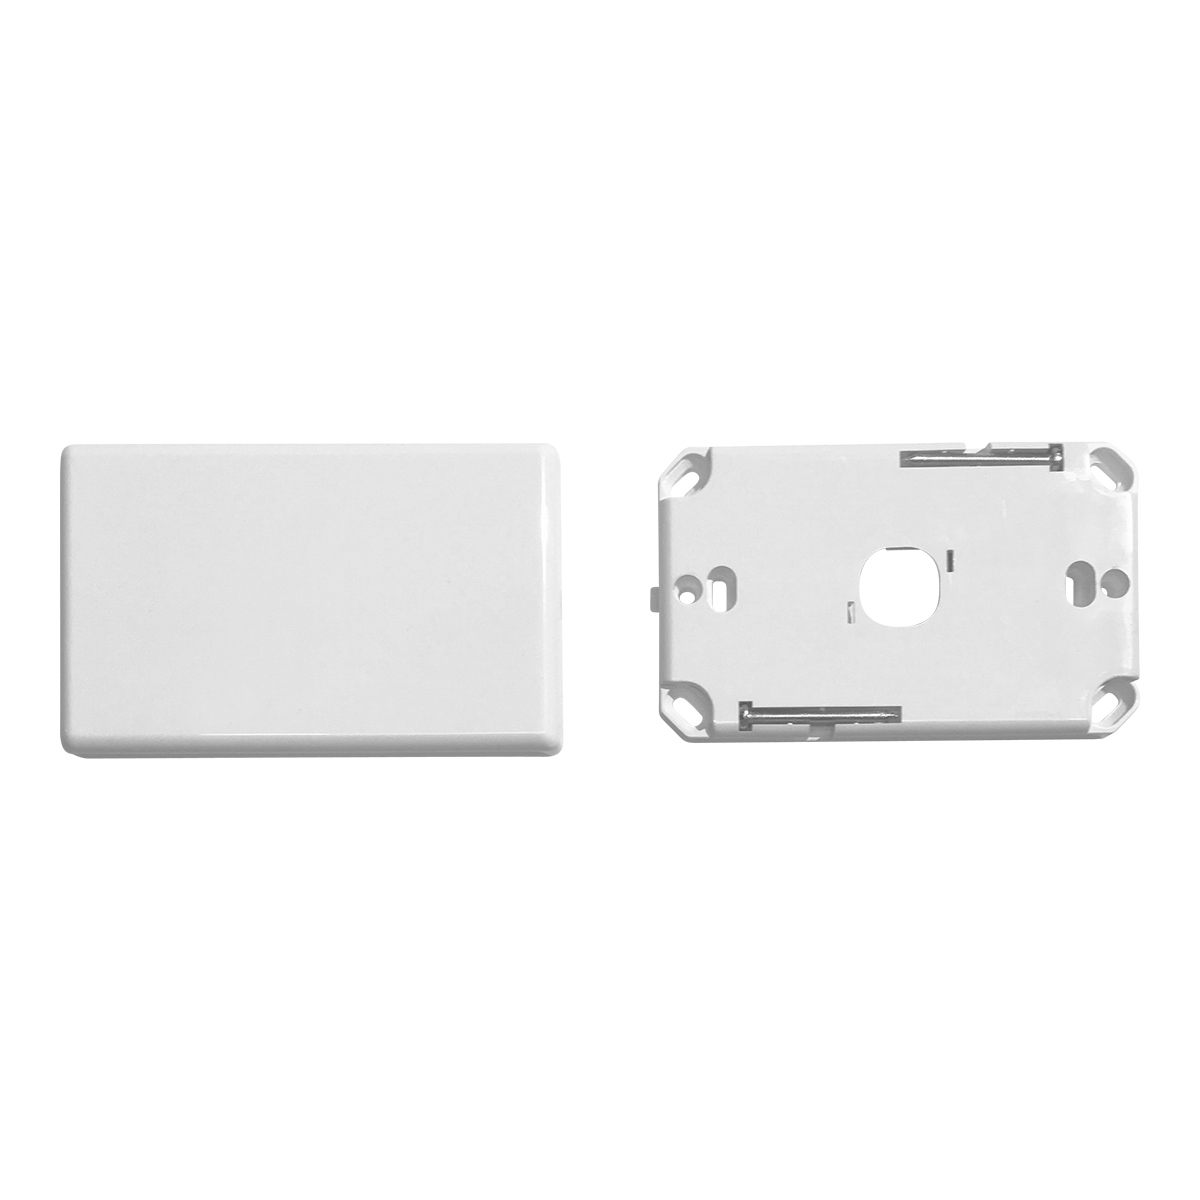 Blank Wall Plate For Power Point Light Switch Cover